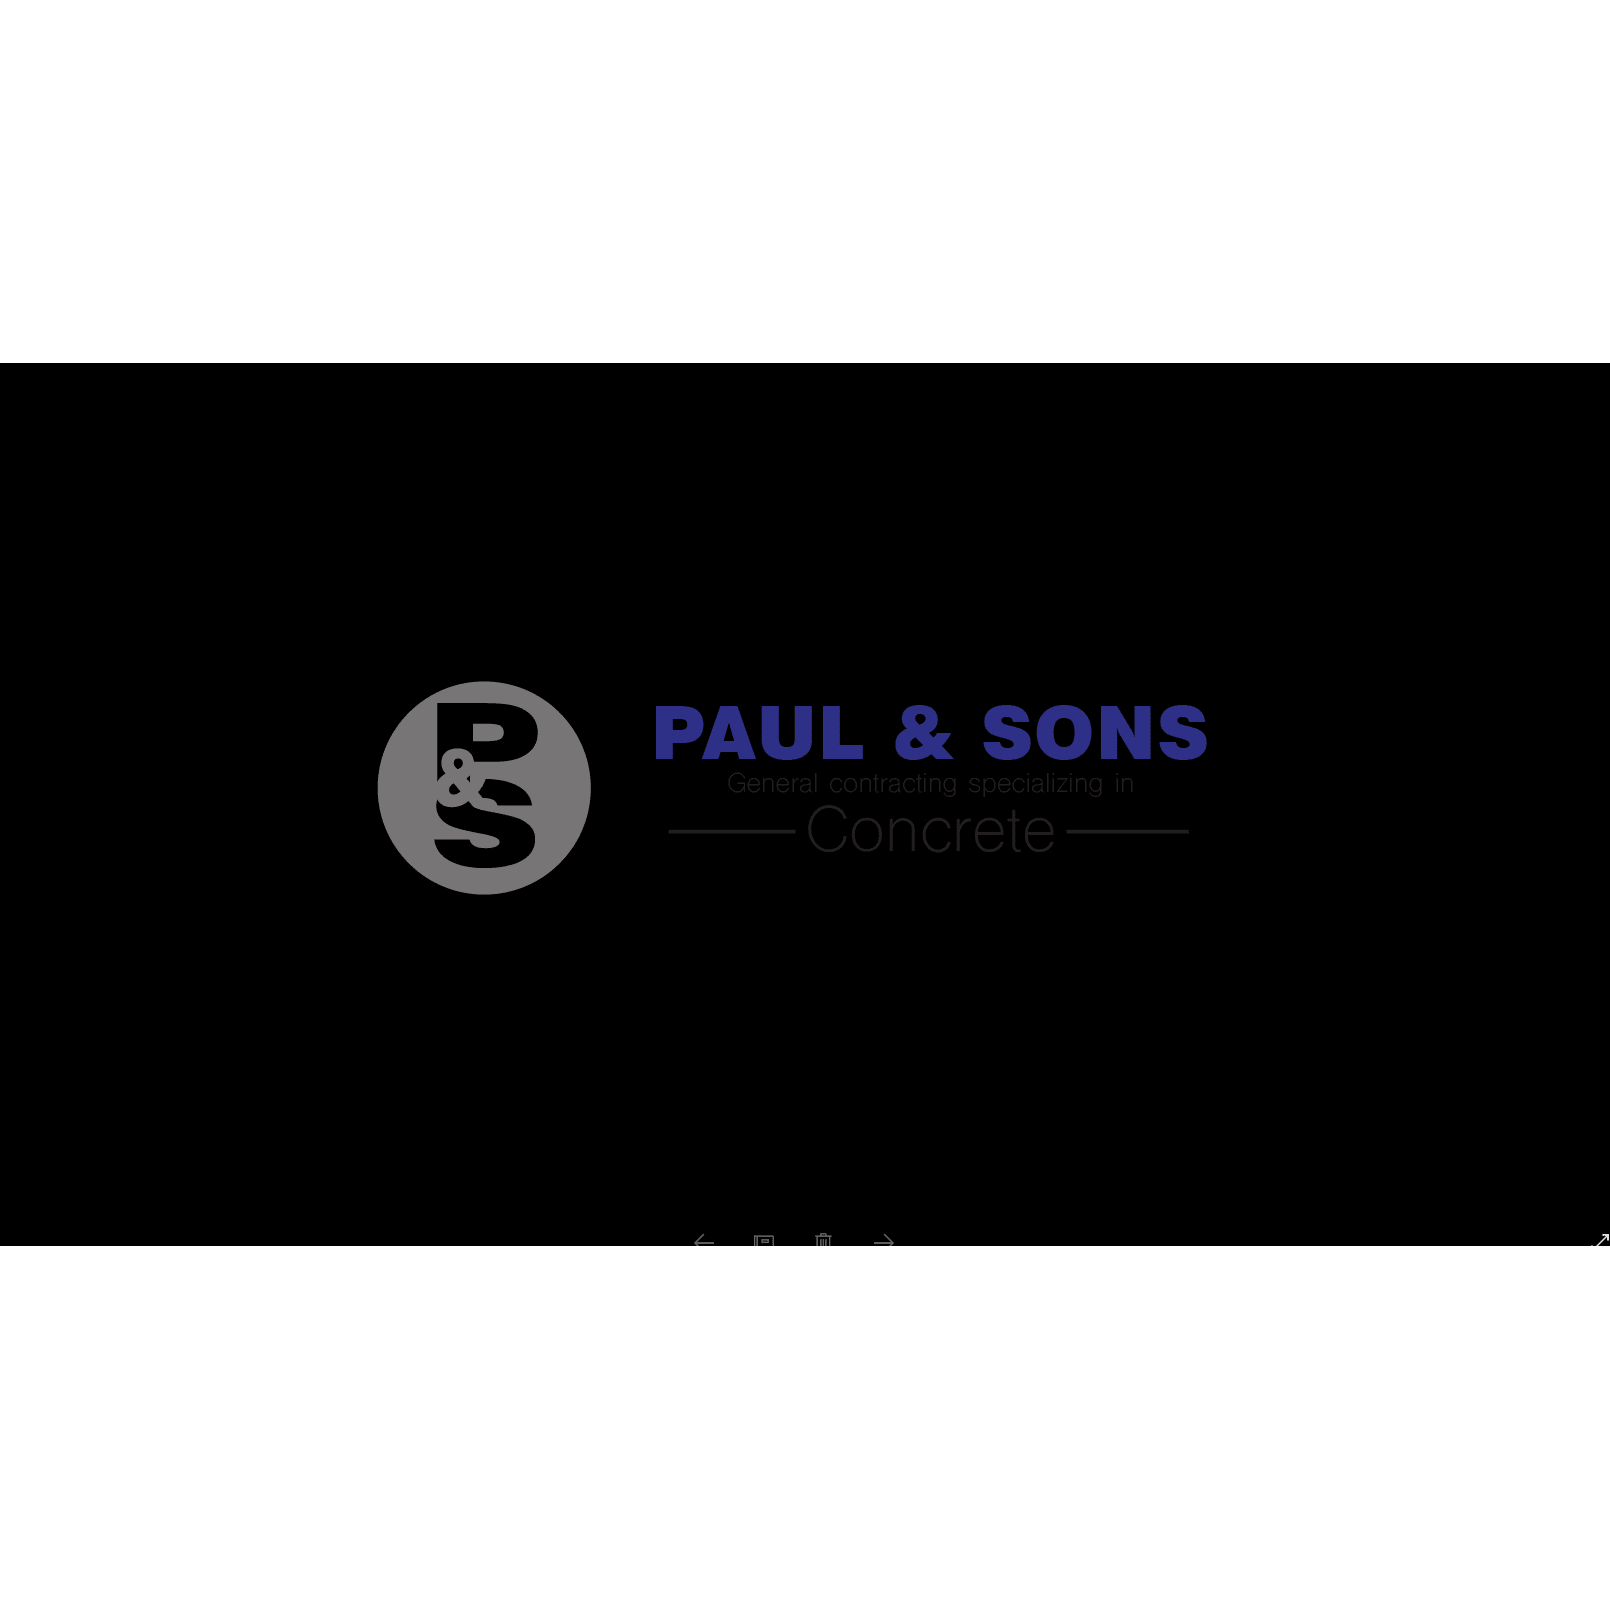 Paul & Sons General Contracting, LLC